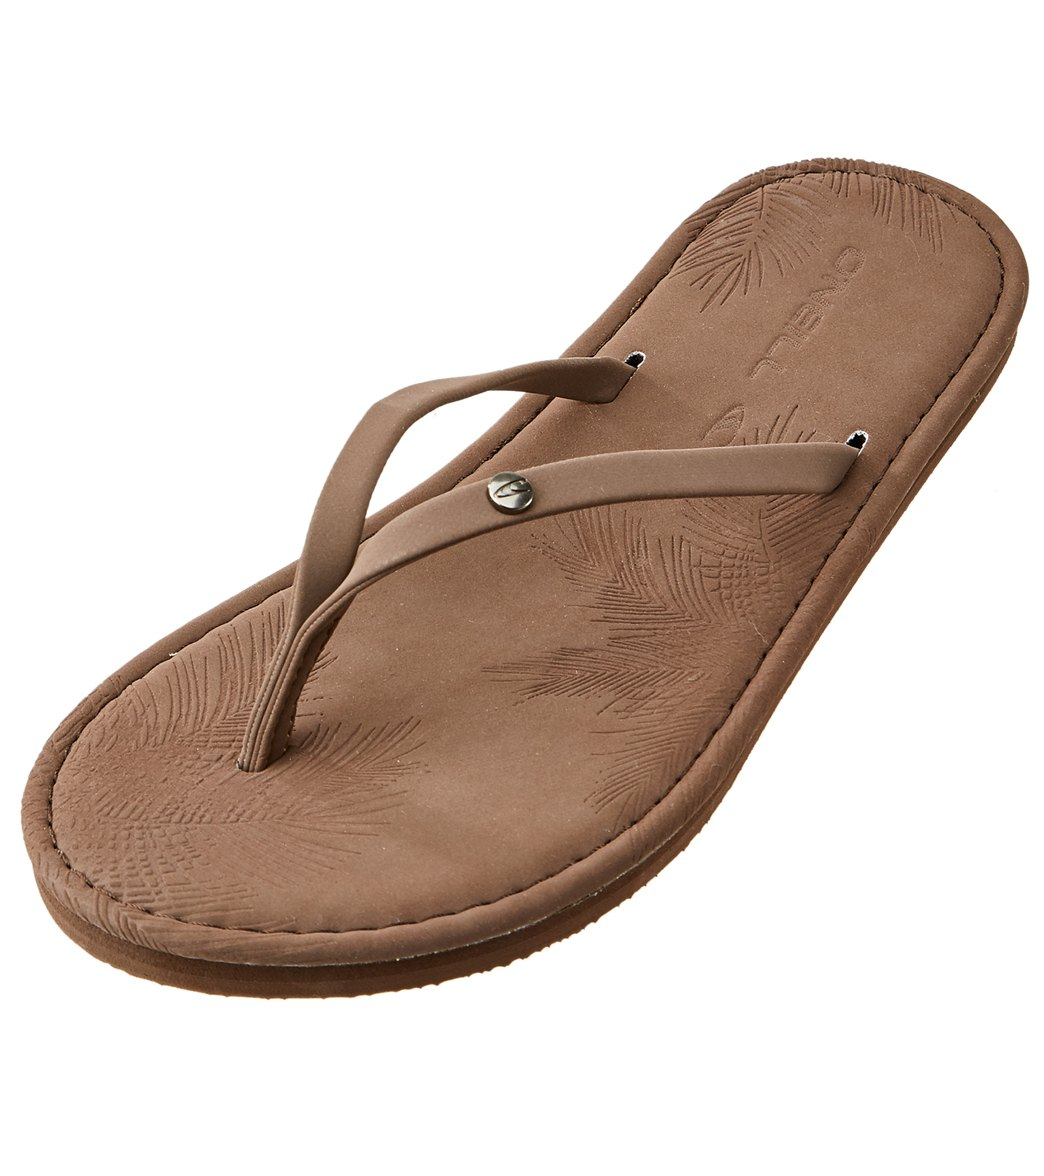 8c56ceb9a O Neill Women s Sophia Flip Flop at SwimOutlet.com